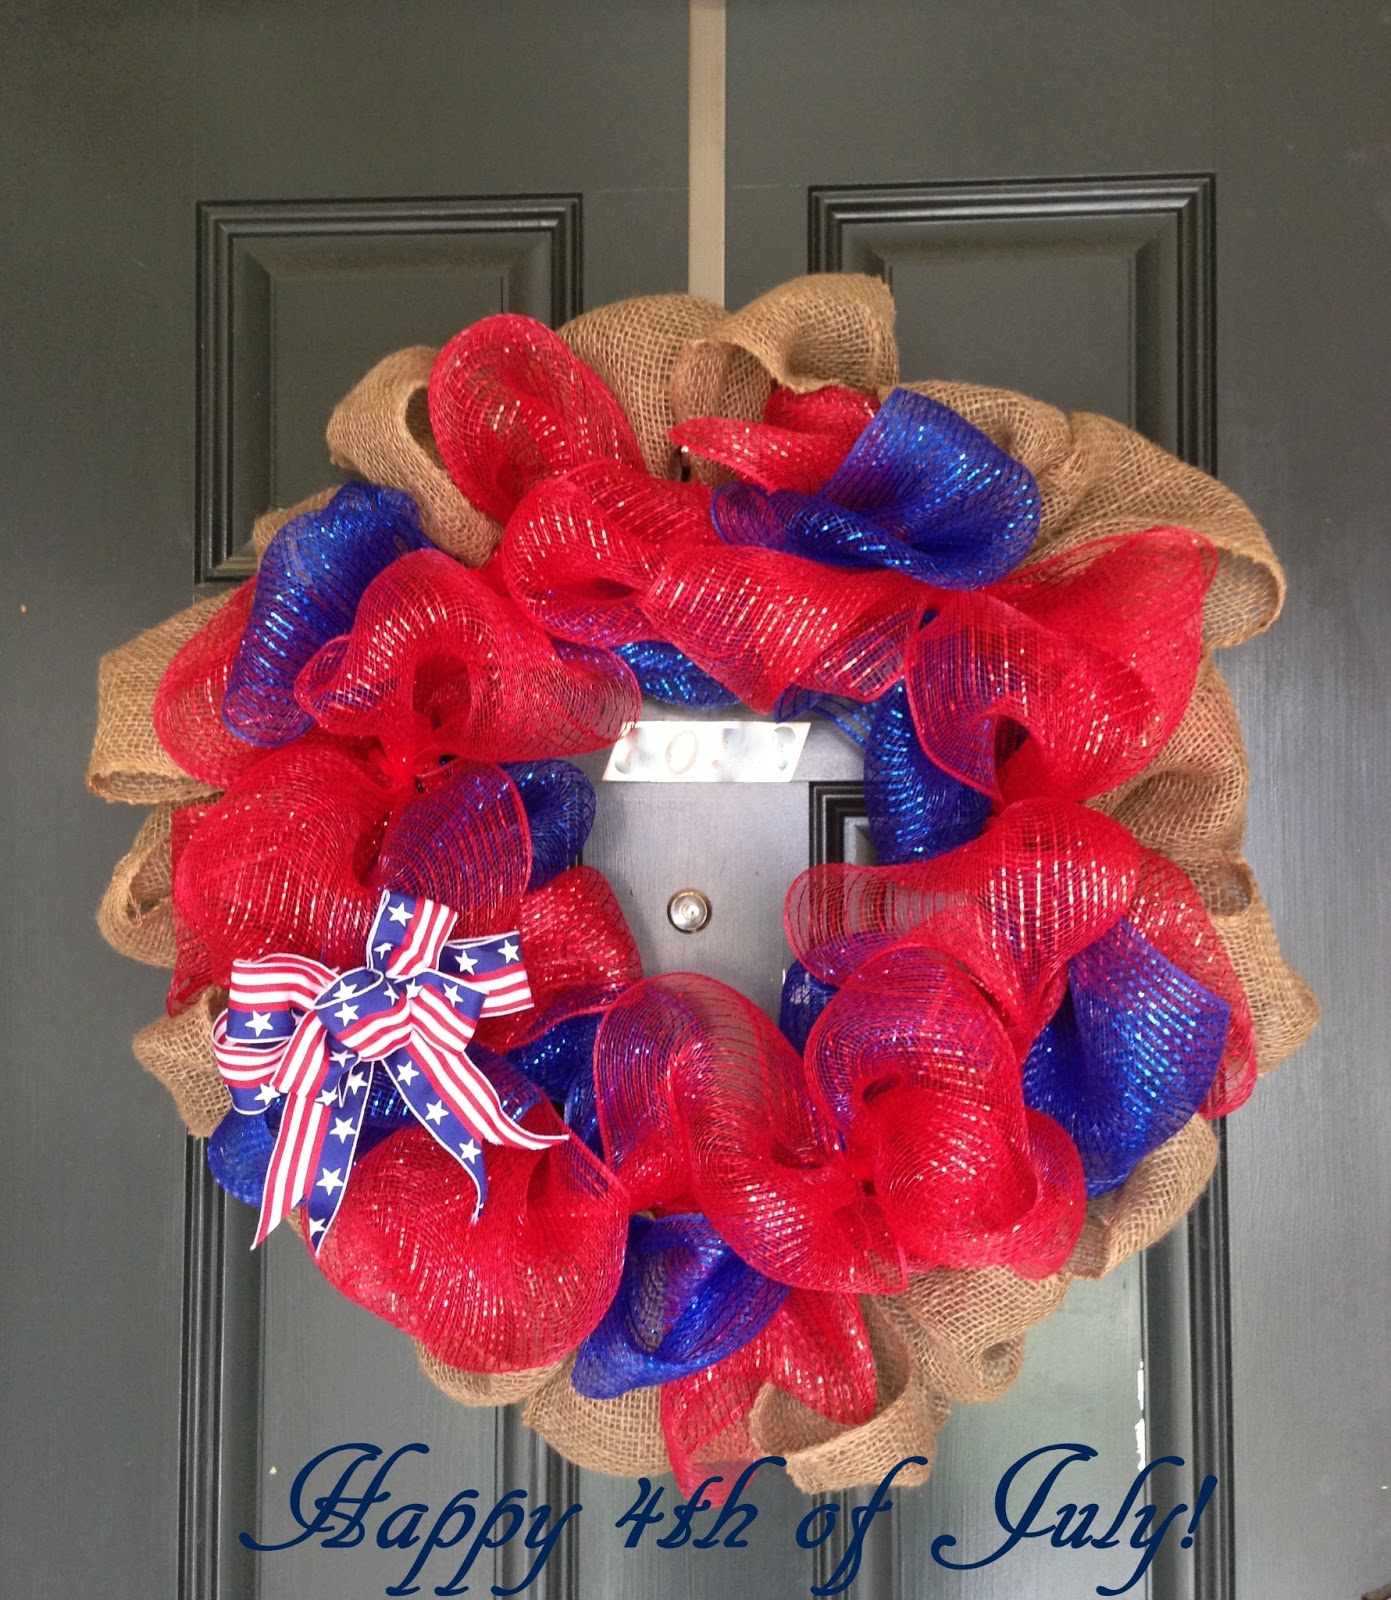 A little bolt of life 4th of july deco mesh wreath diy i love my ribbon wreaths but these deco mesh wreaths have become quite the trend i looked through pinterest to find a good tutorial and give it a try baditri Images